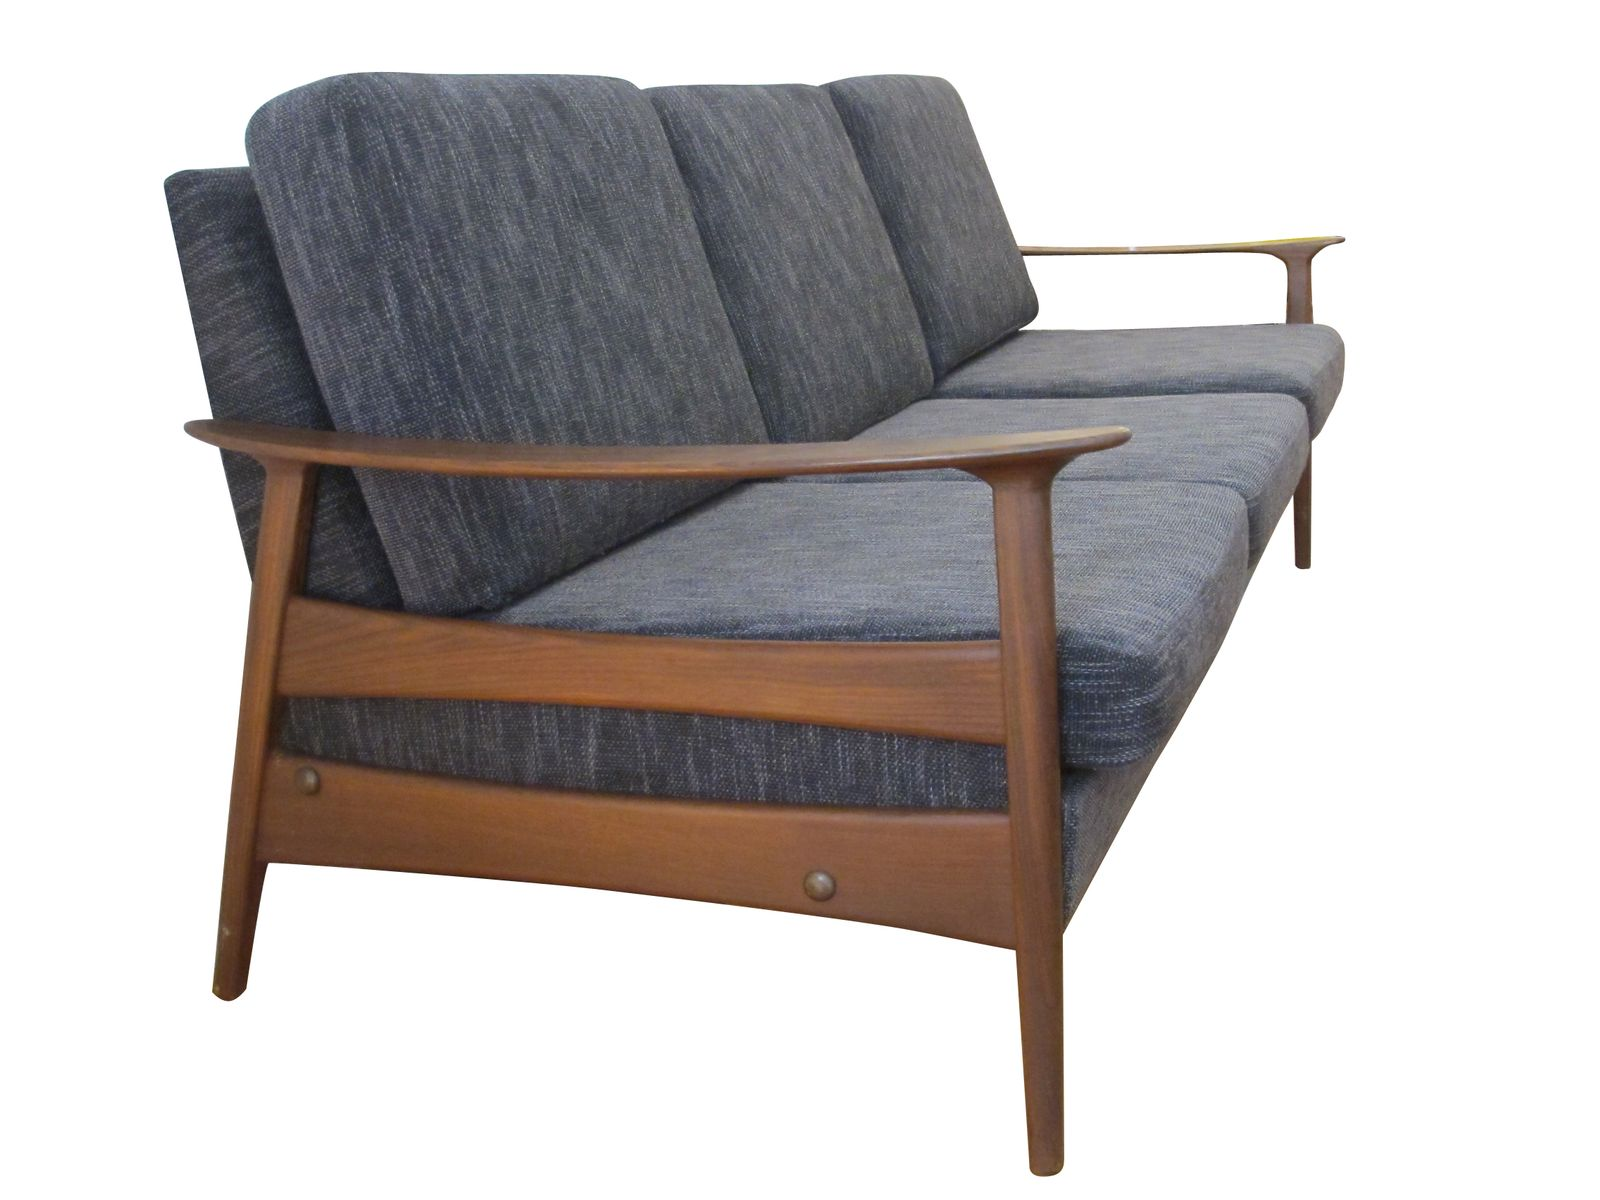 Scandinavian Style Teak Sofa 1960s For Sale At Pamono